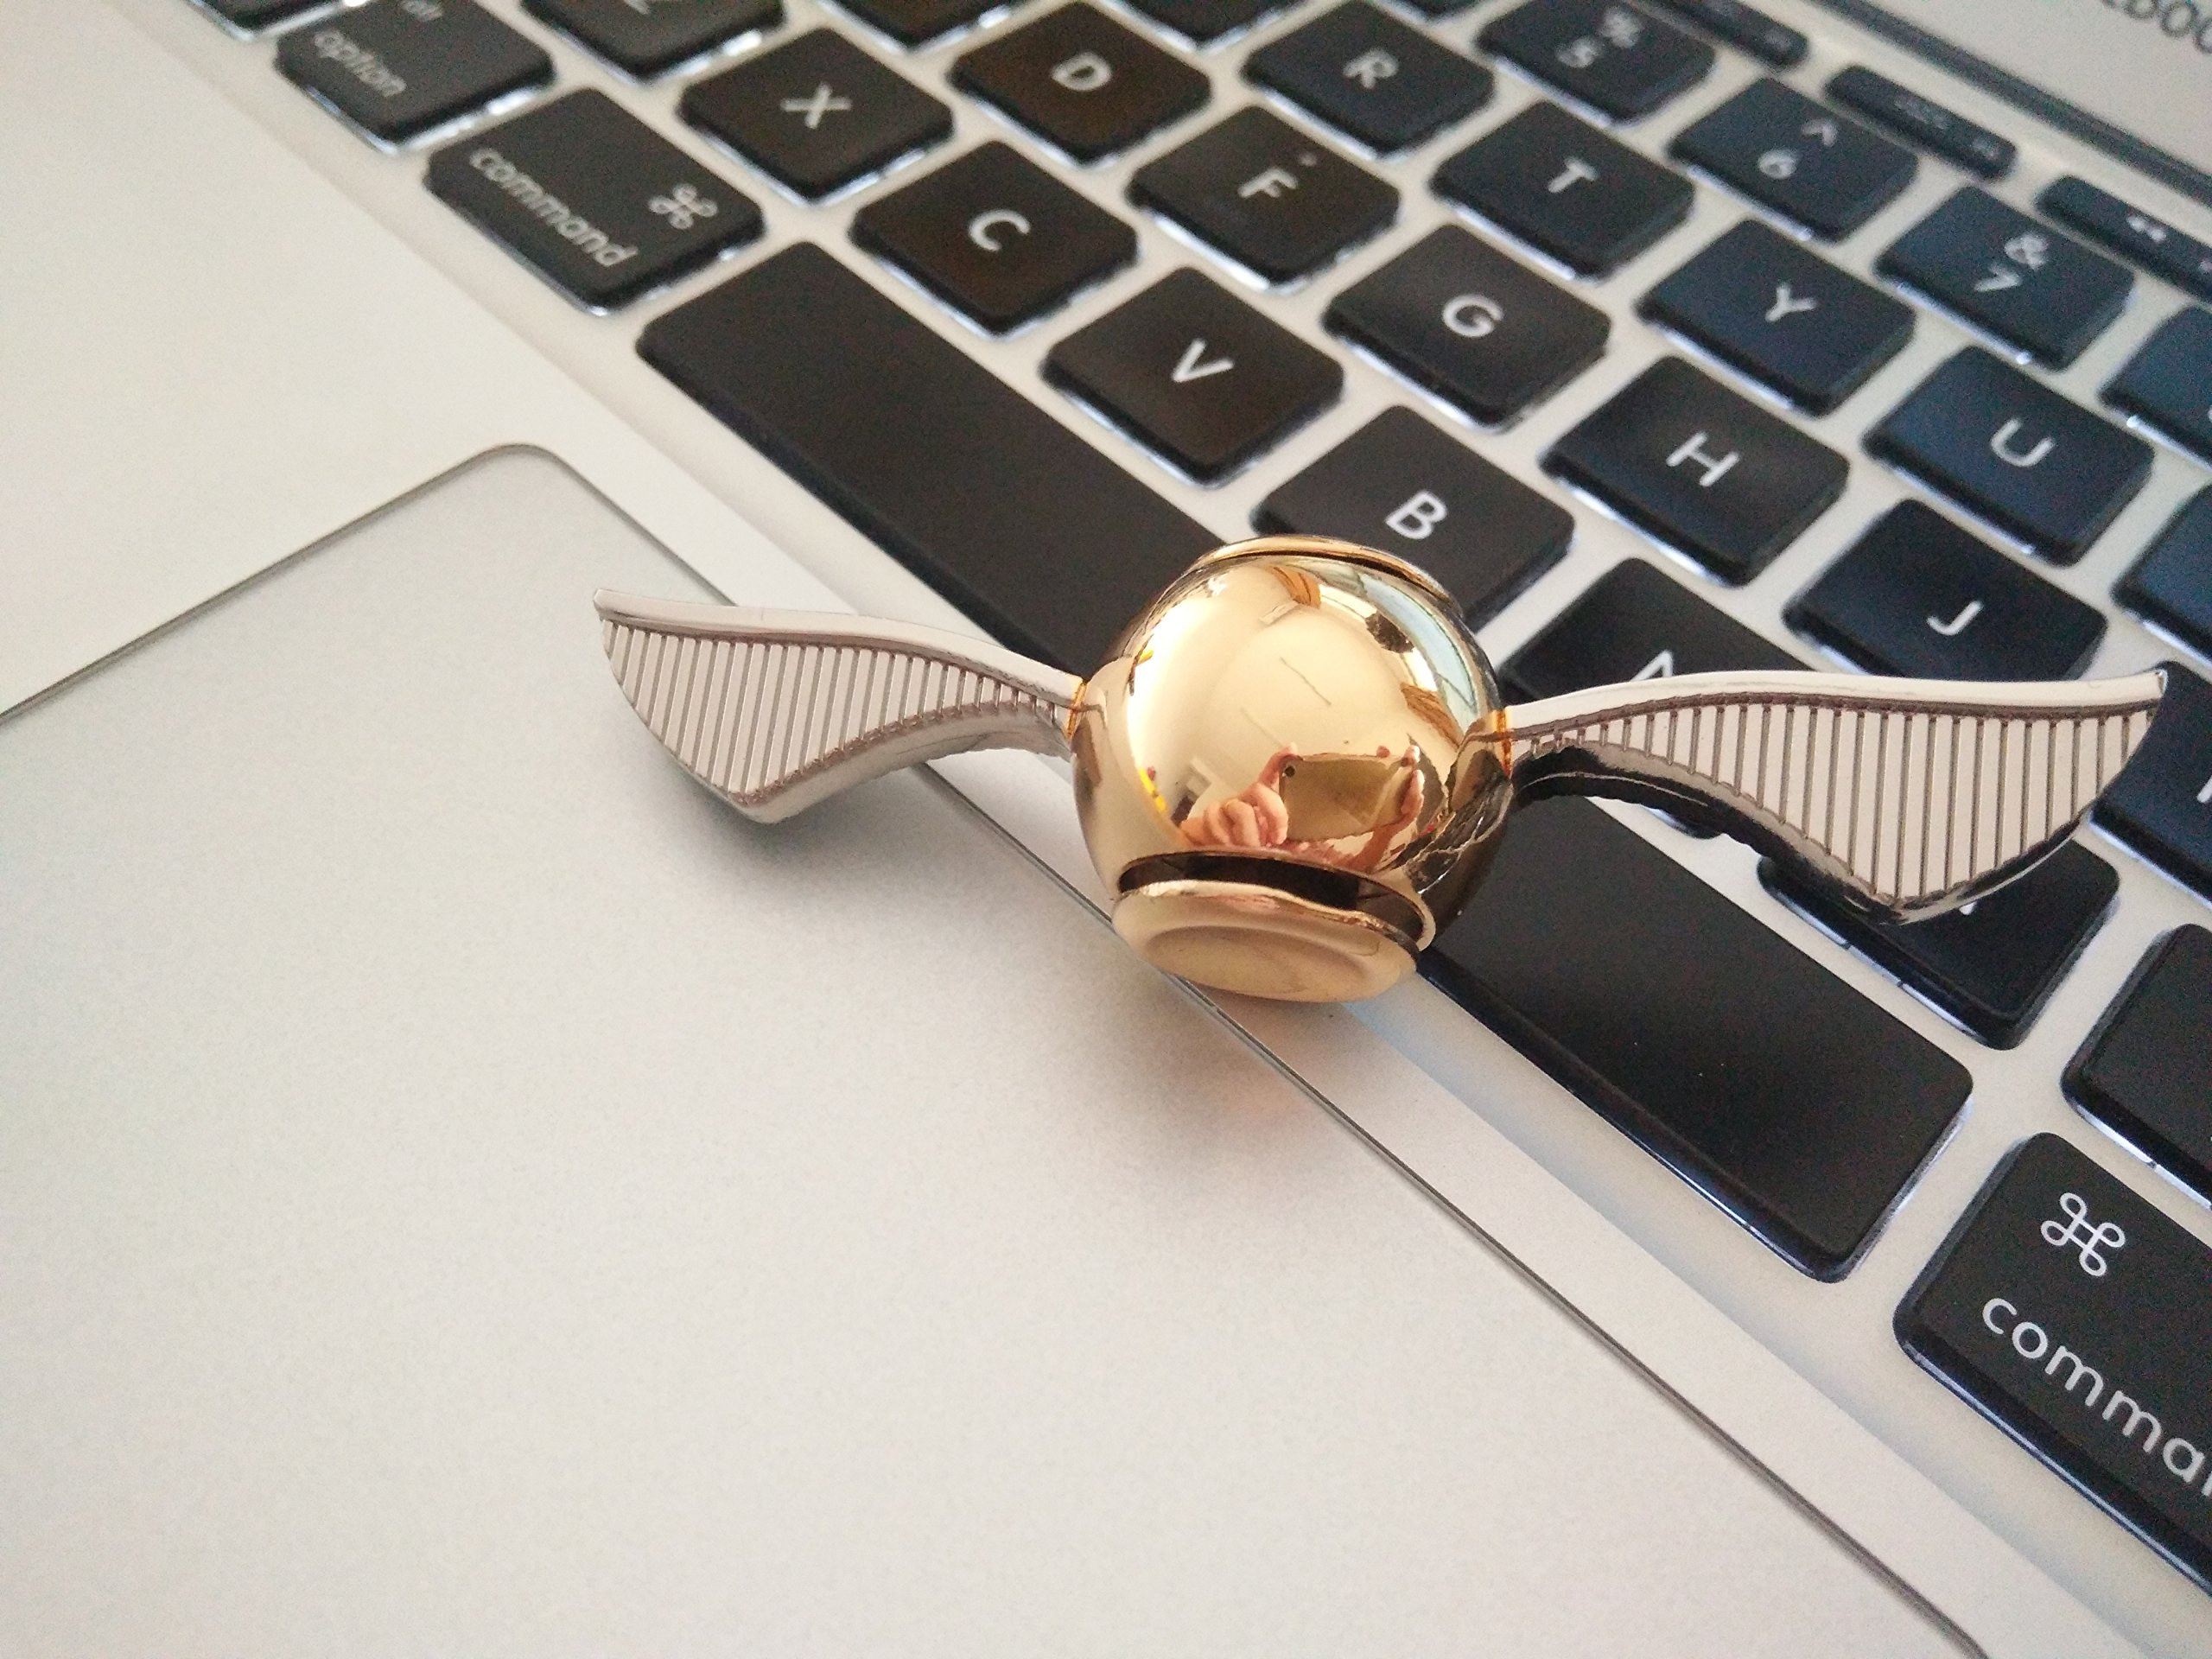 MAYBO SPORTS Wiitin Exclusive Harry Potter Fidget Hand Spinner Toy Made by Metal, The Original Golden Snitch Used in Quidditch by MAYBO SPORTS (Image #5)